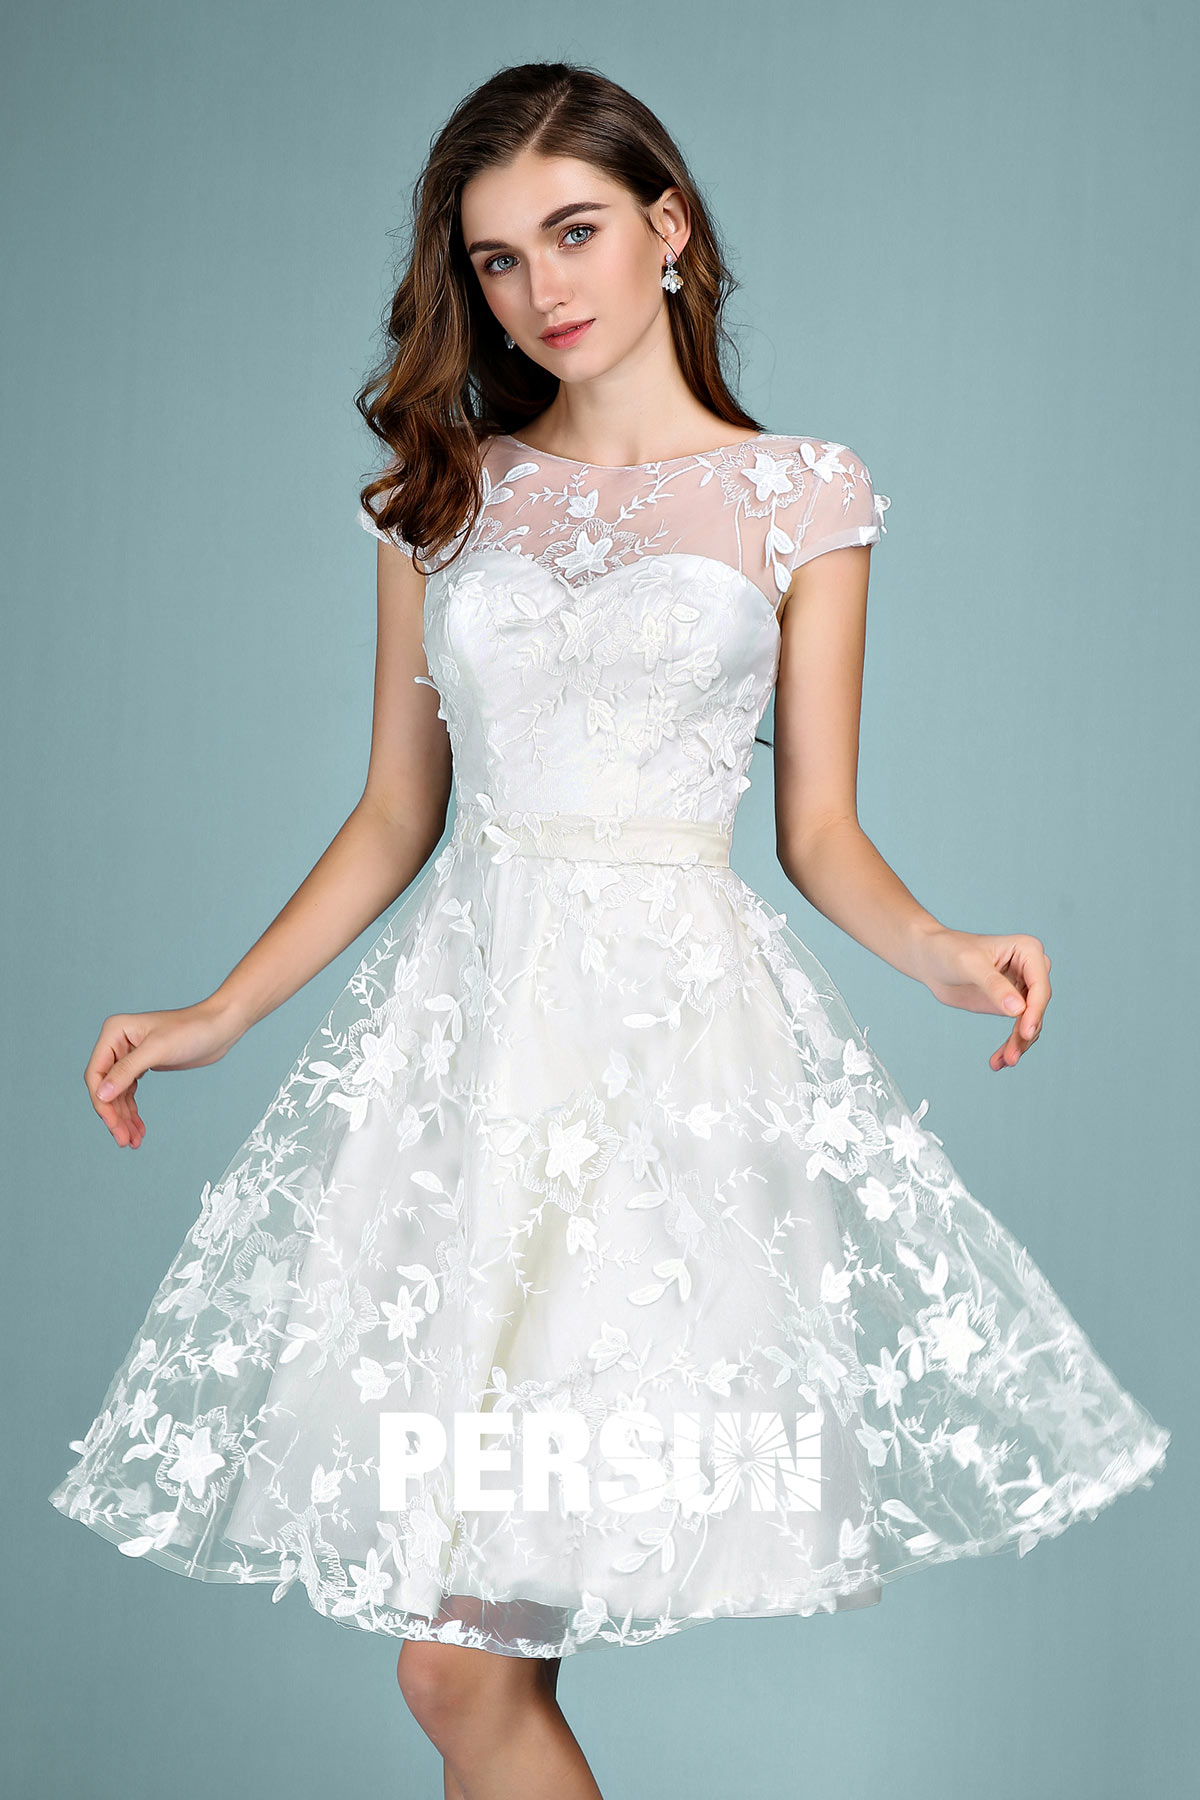 robe de mariée civil courte encolure illusion florale 3D